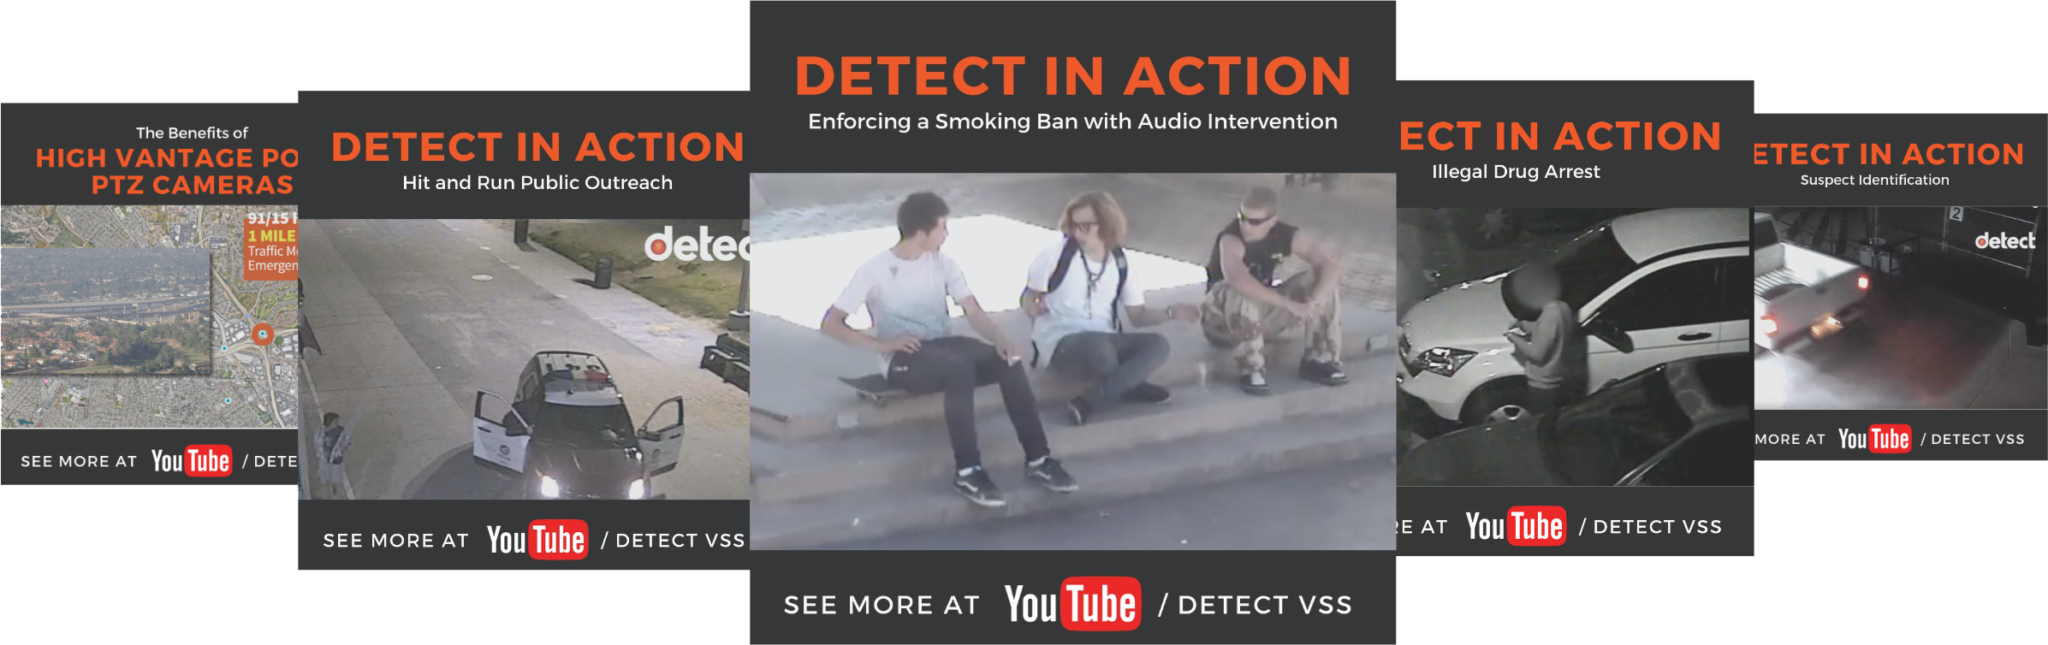 Detect in Action